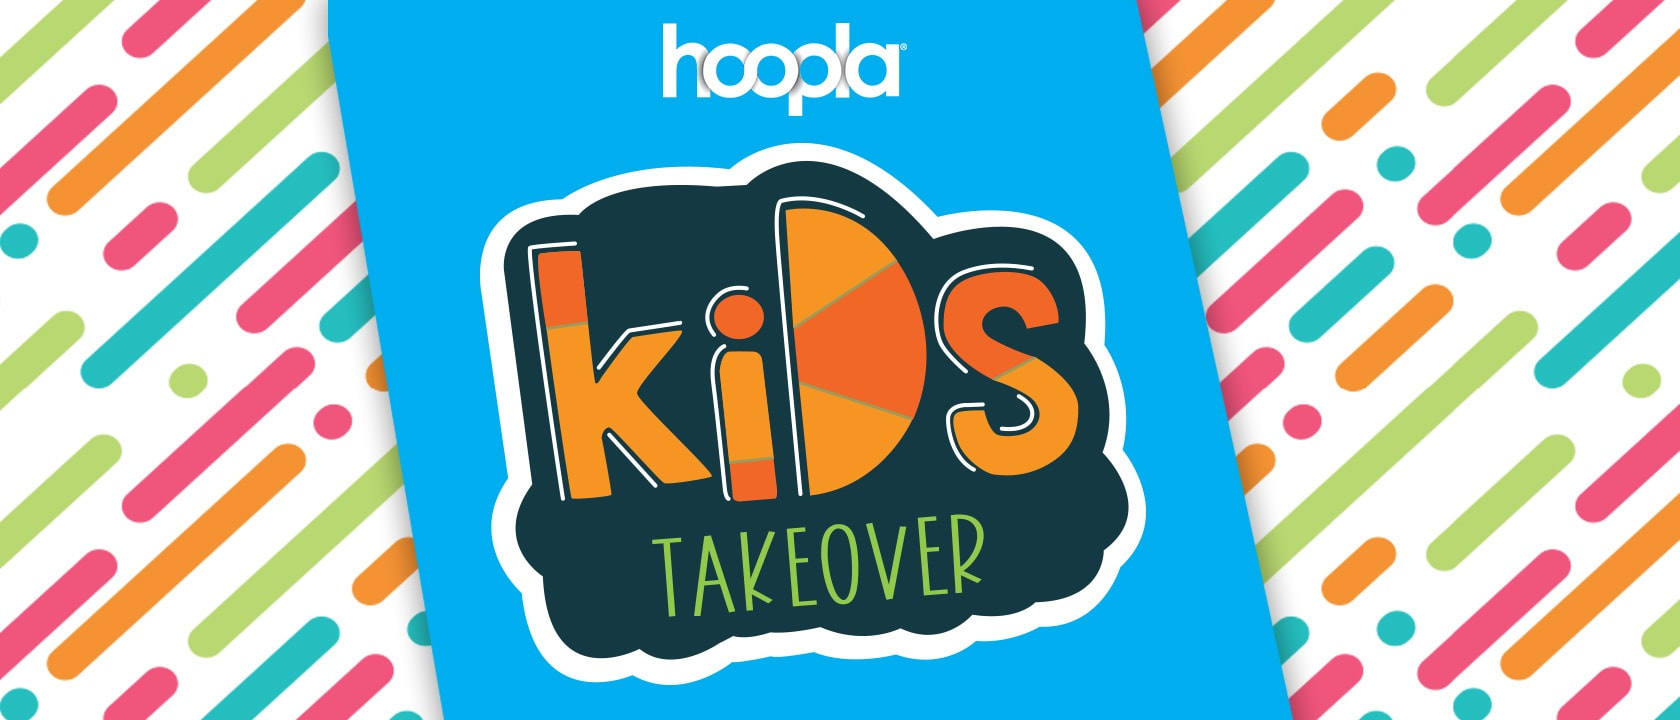 hoopla Kids Takeover logo